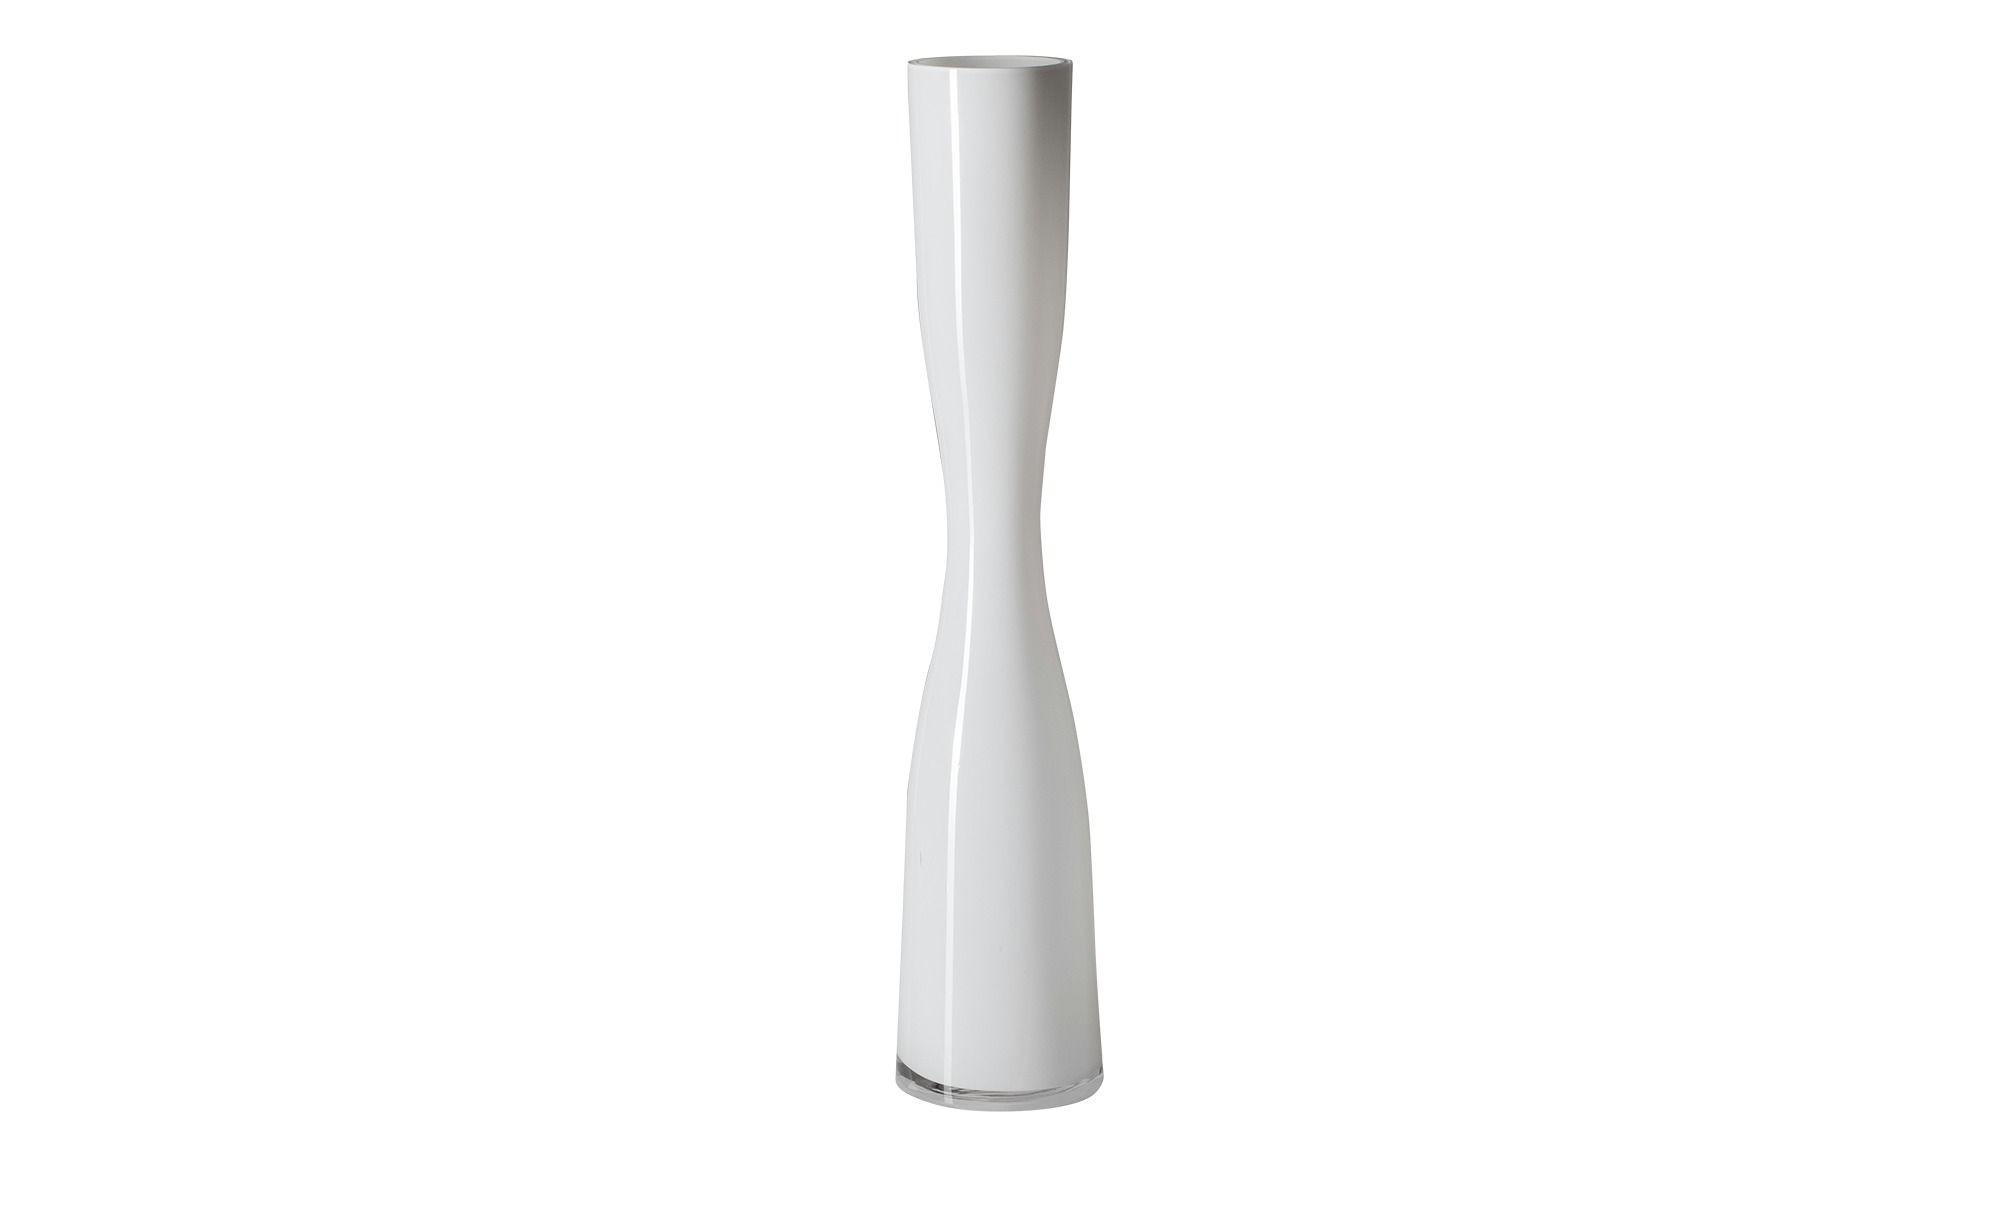 white ceramic geometric vase of 5211 zoom 2 000a—1 222 pixel vase pinterest for 5211 zoom 2 000a—1 222 pixel